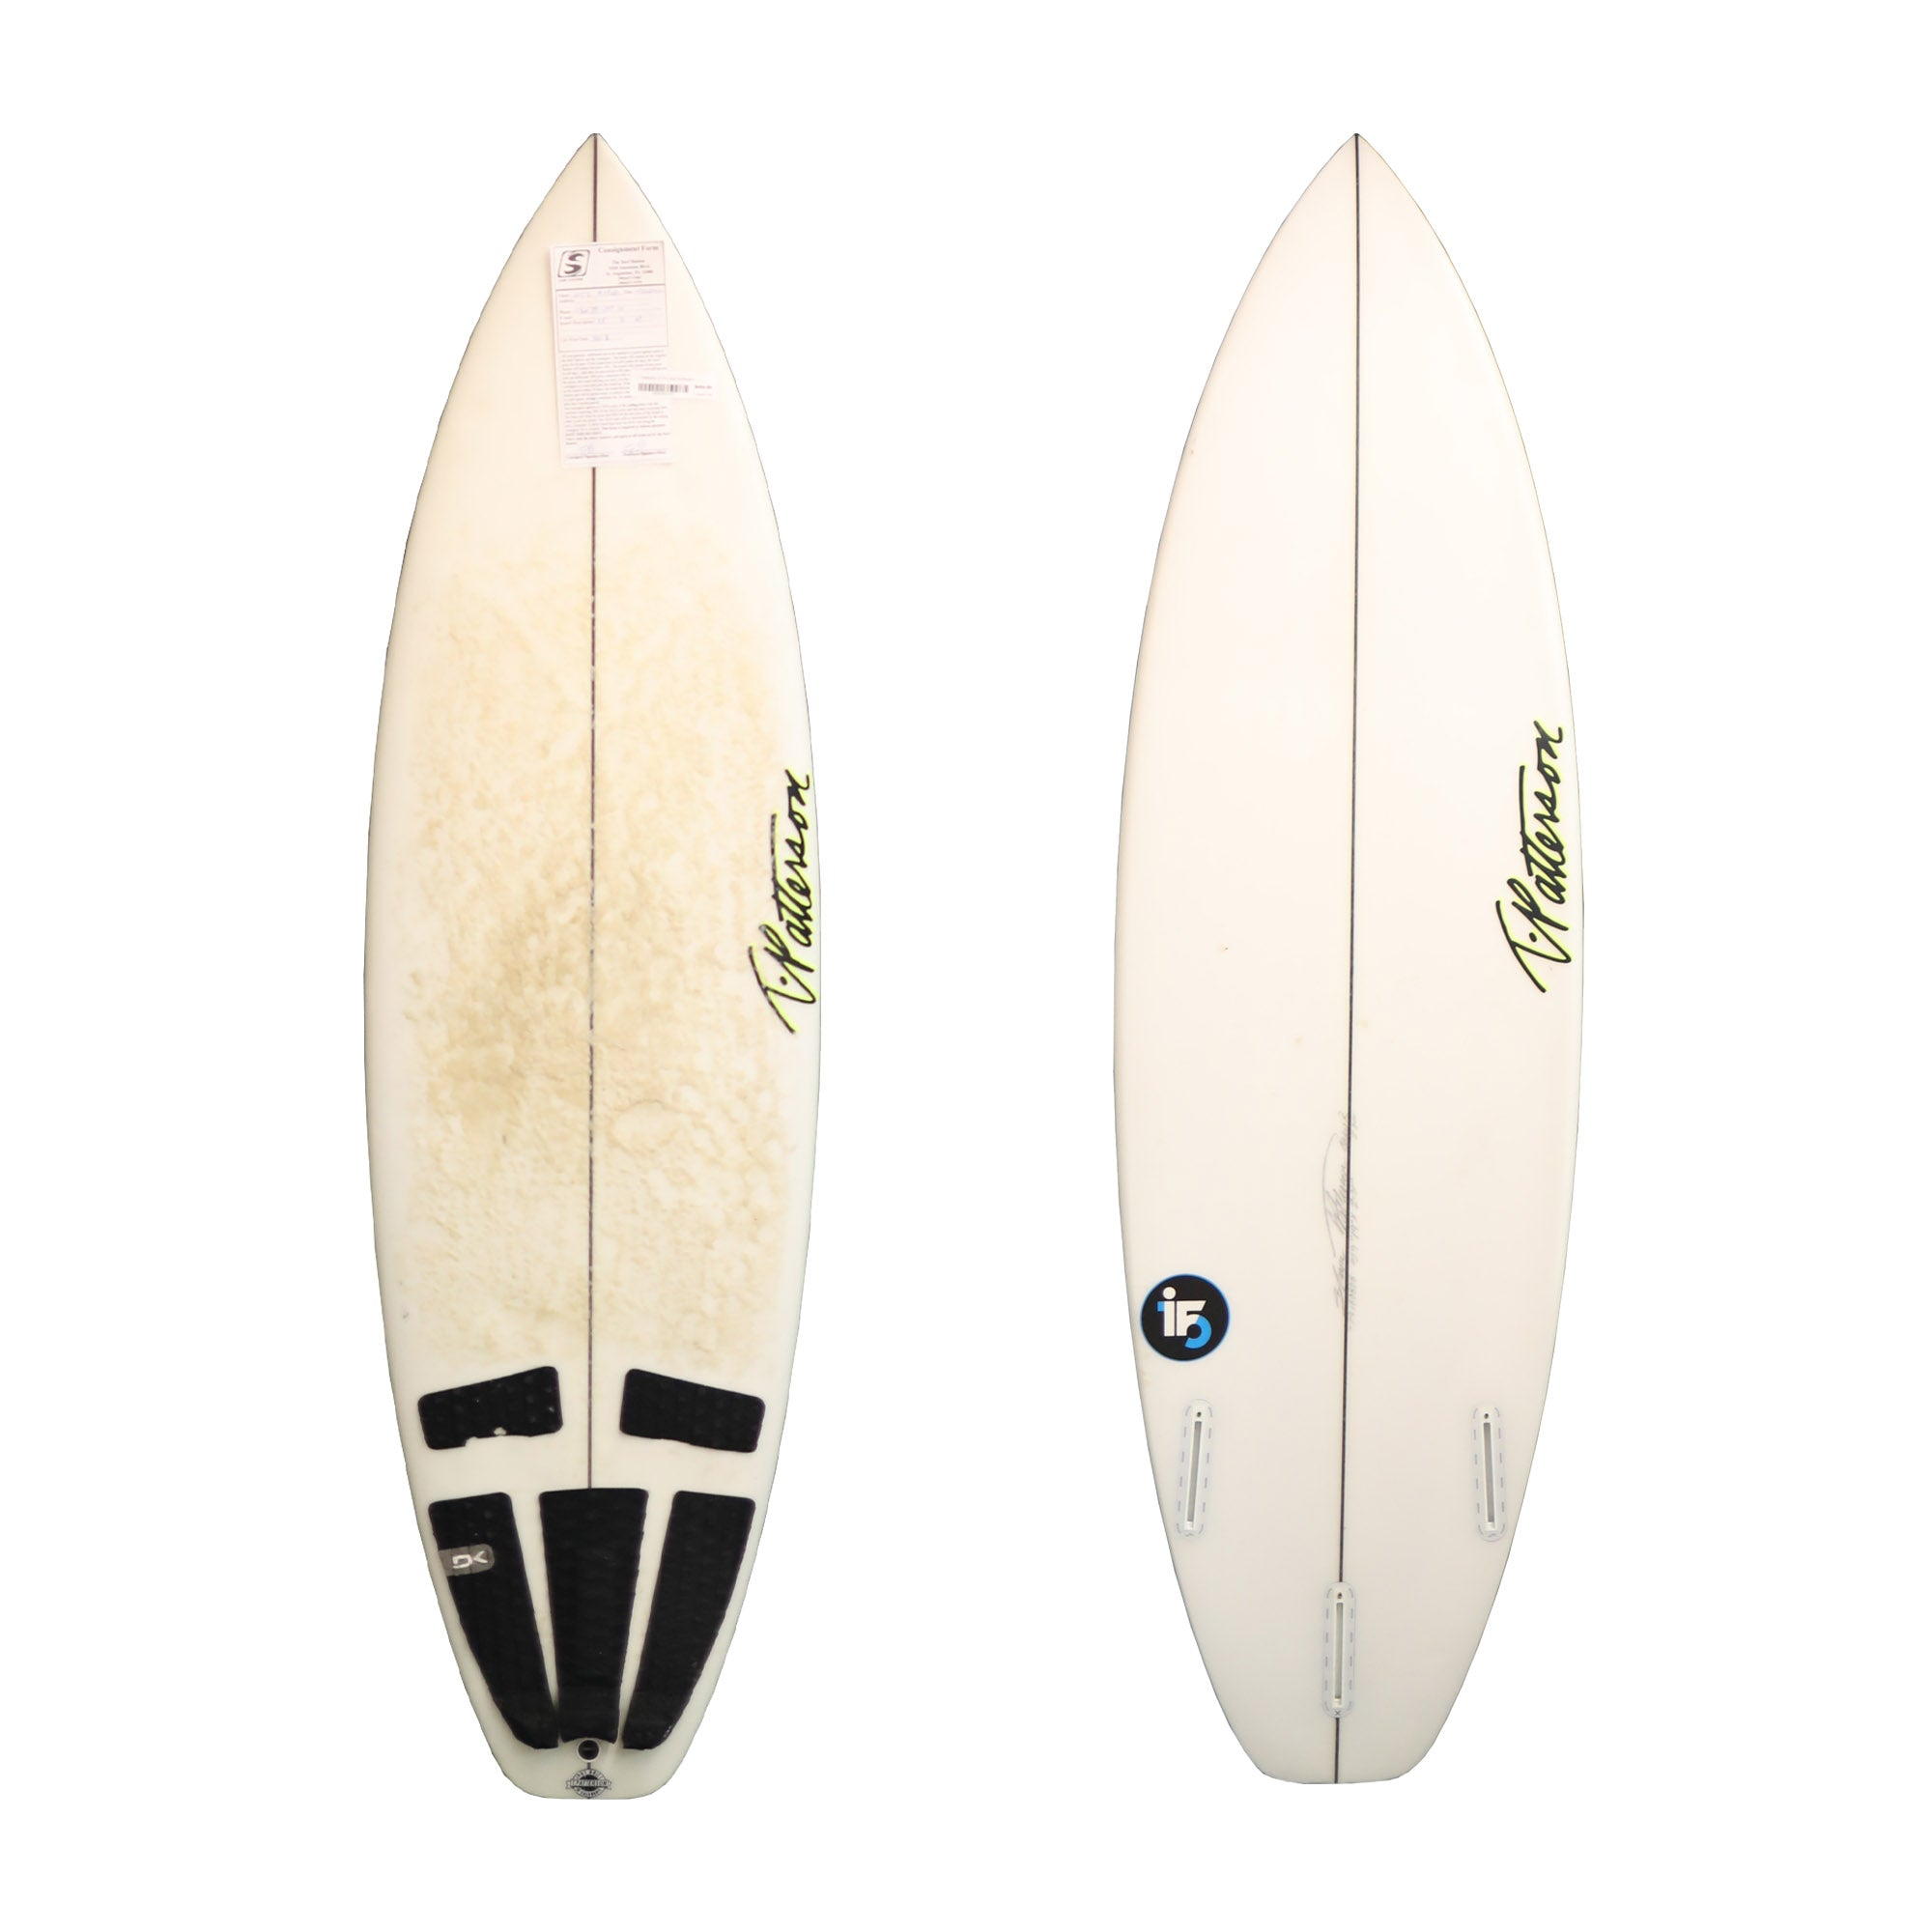 T. Patterson i15 5'9 Used Surfboard